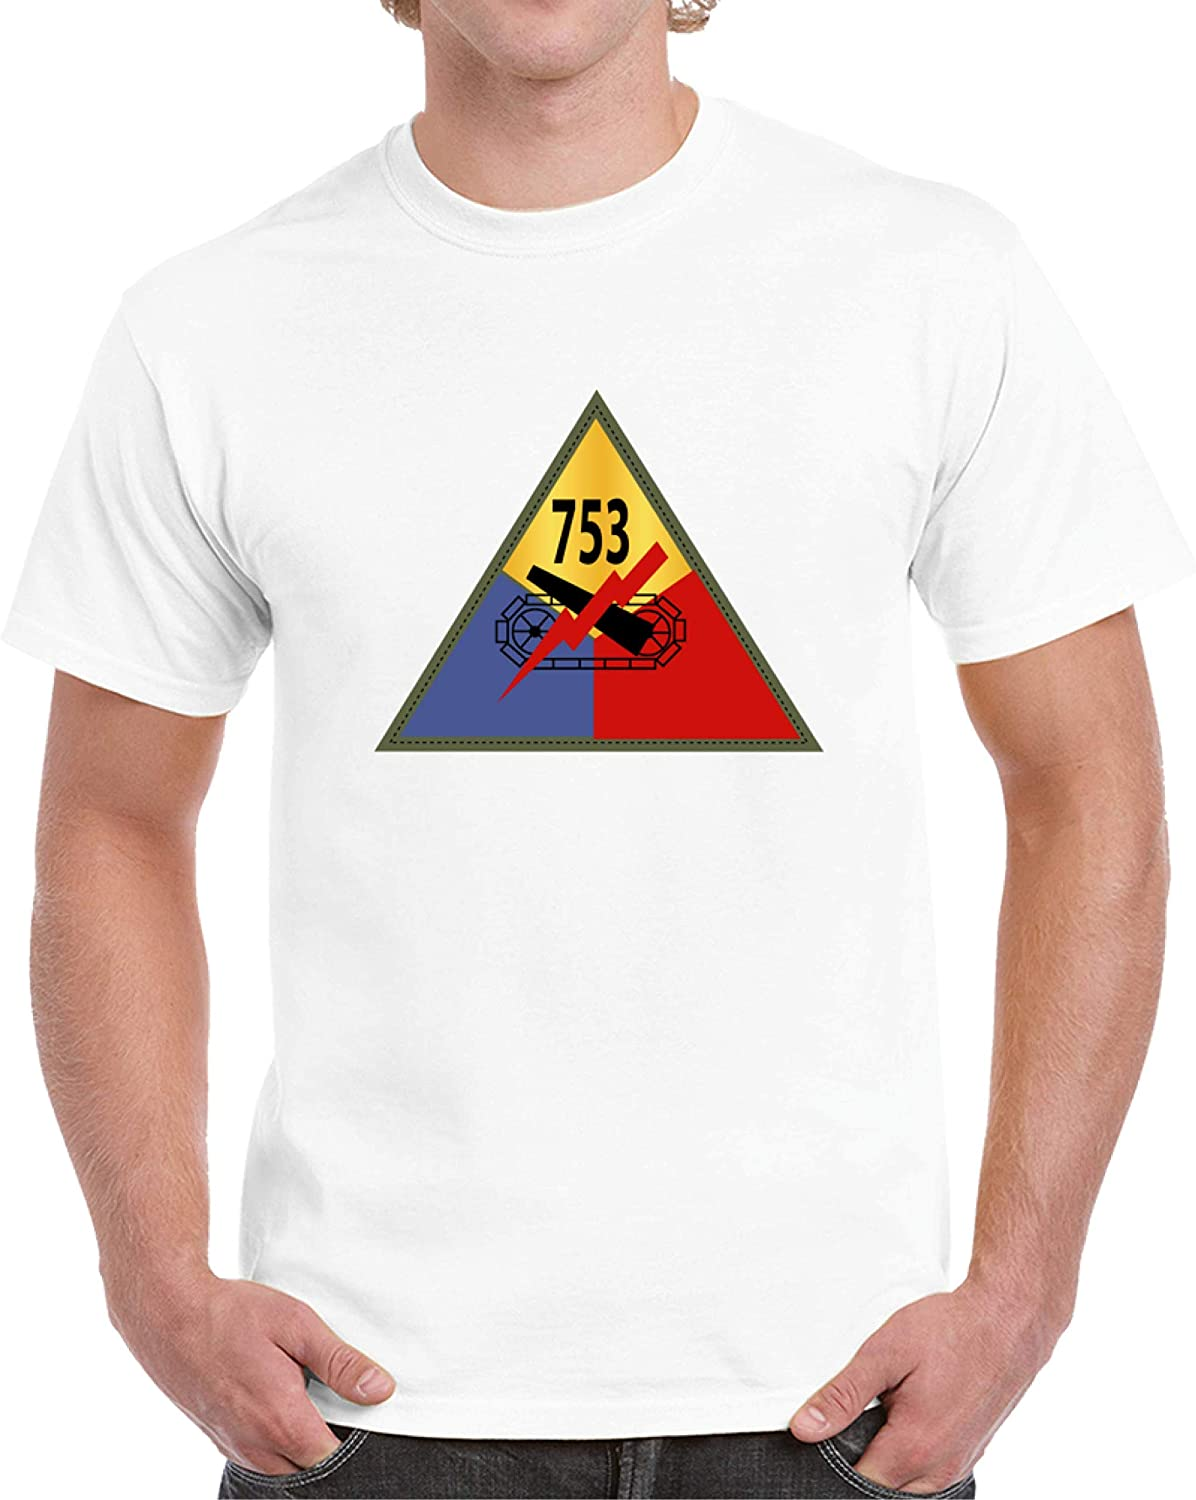 SMALL - Army - 753rd Tank Battalion Ssi T Shirt - White